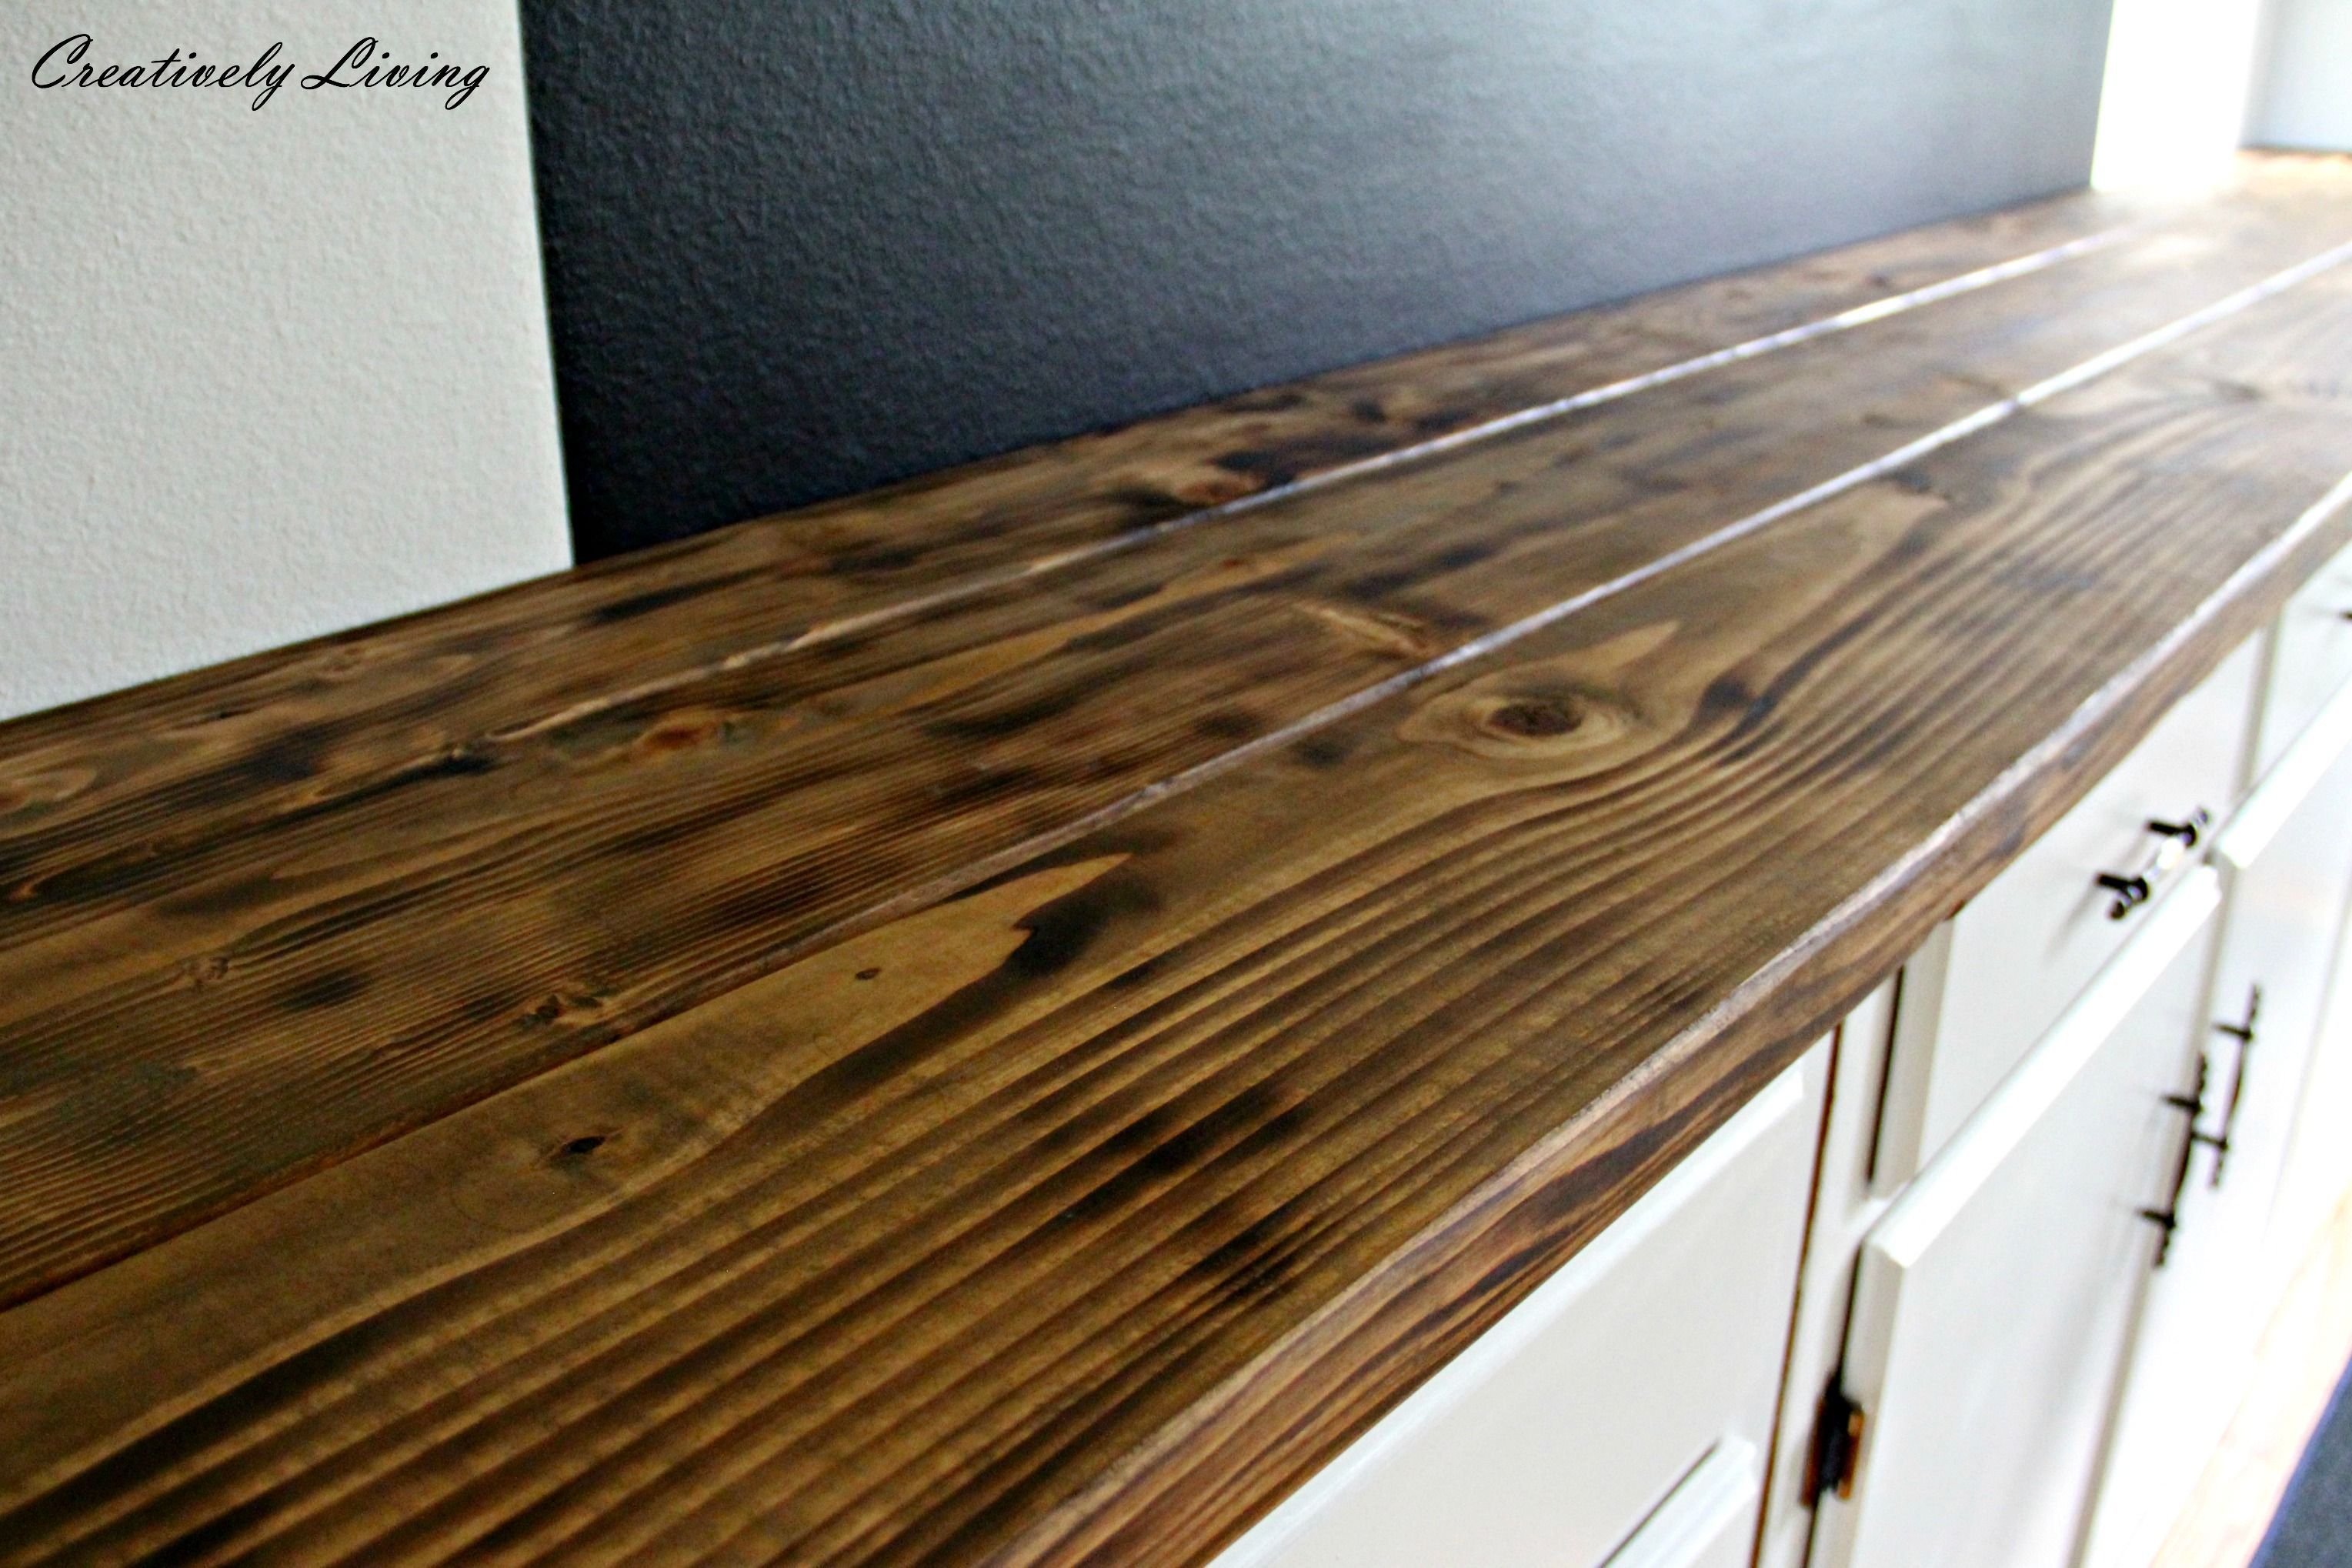 Torched Diy Rustic Wood Counter Top For Under 50 By Creatively